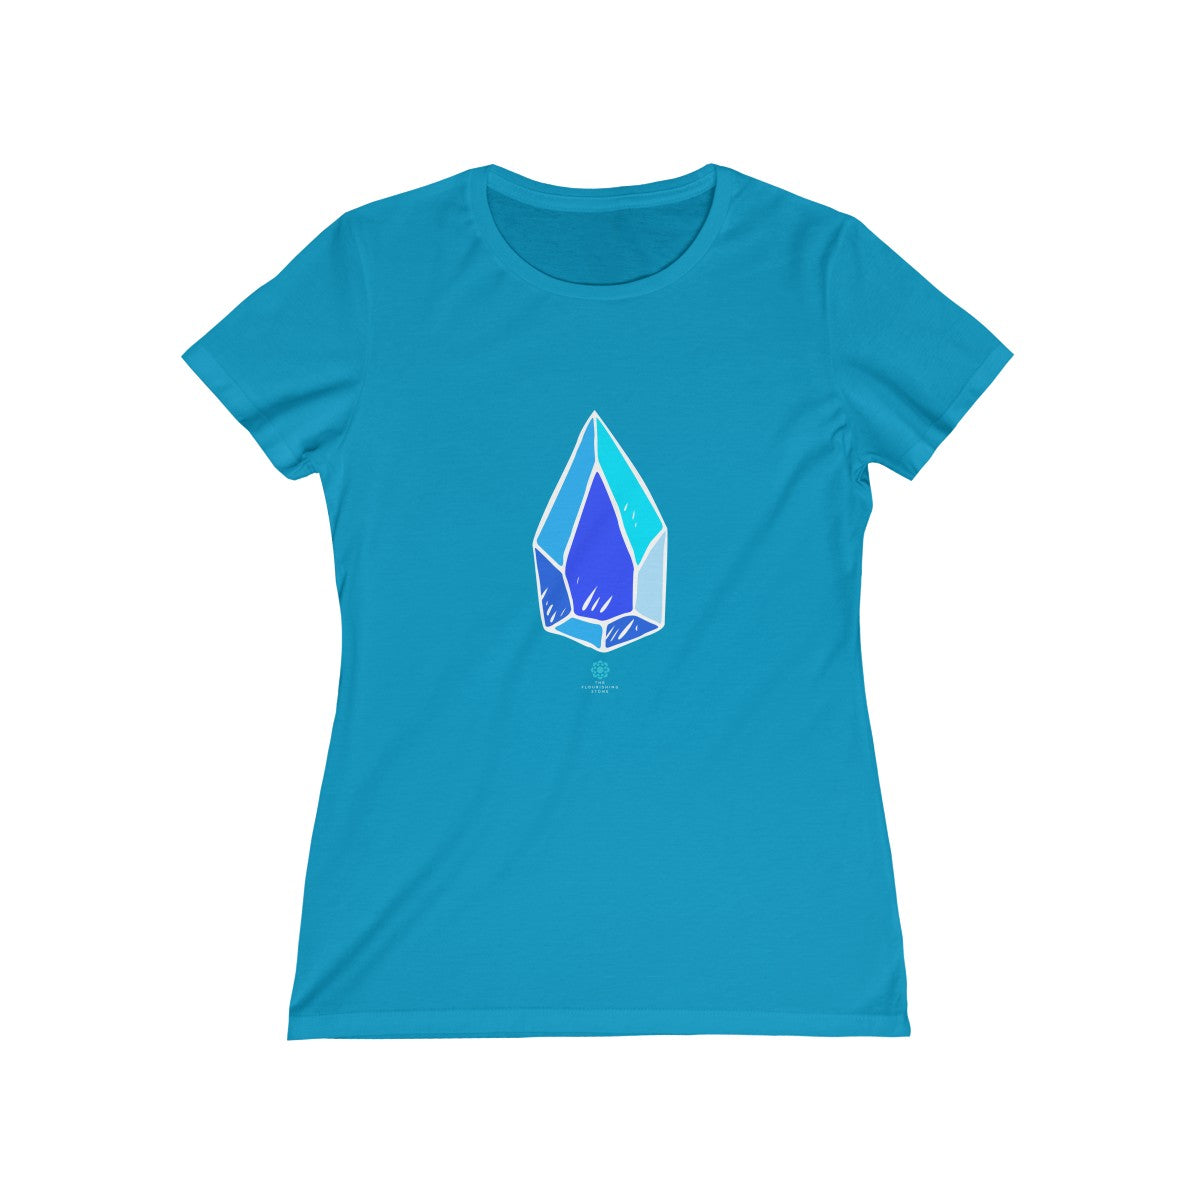 The Blue Crystal Women's Missy Tee